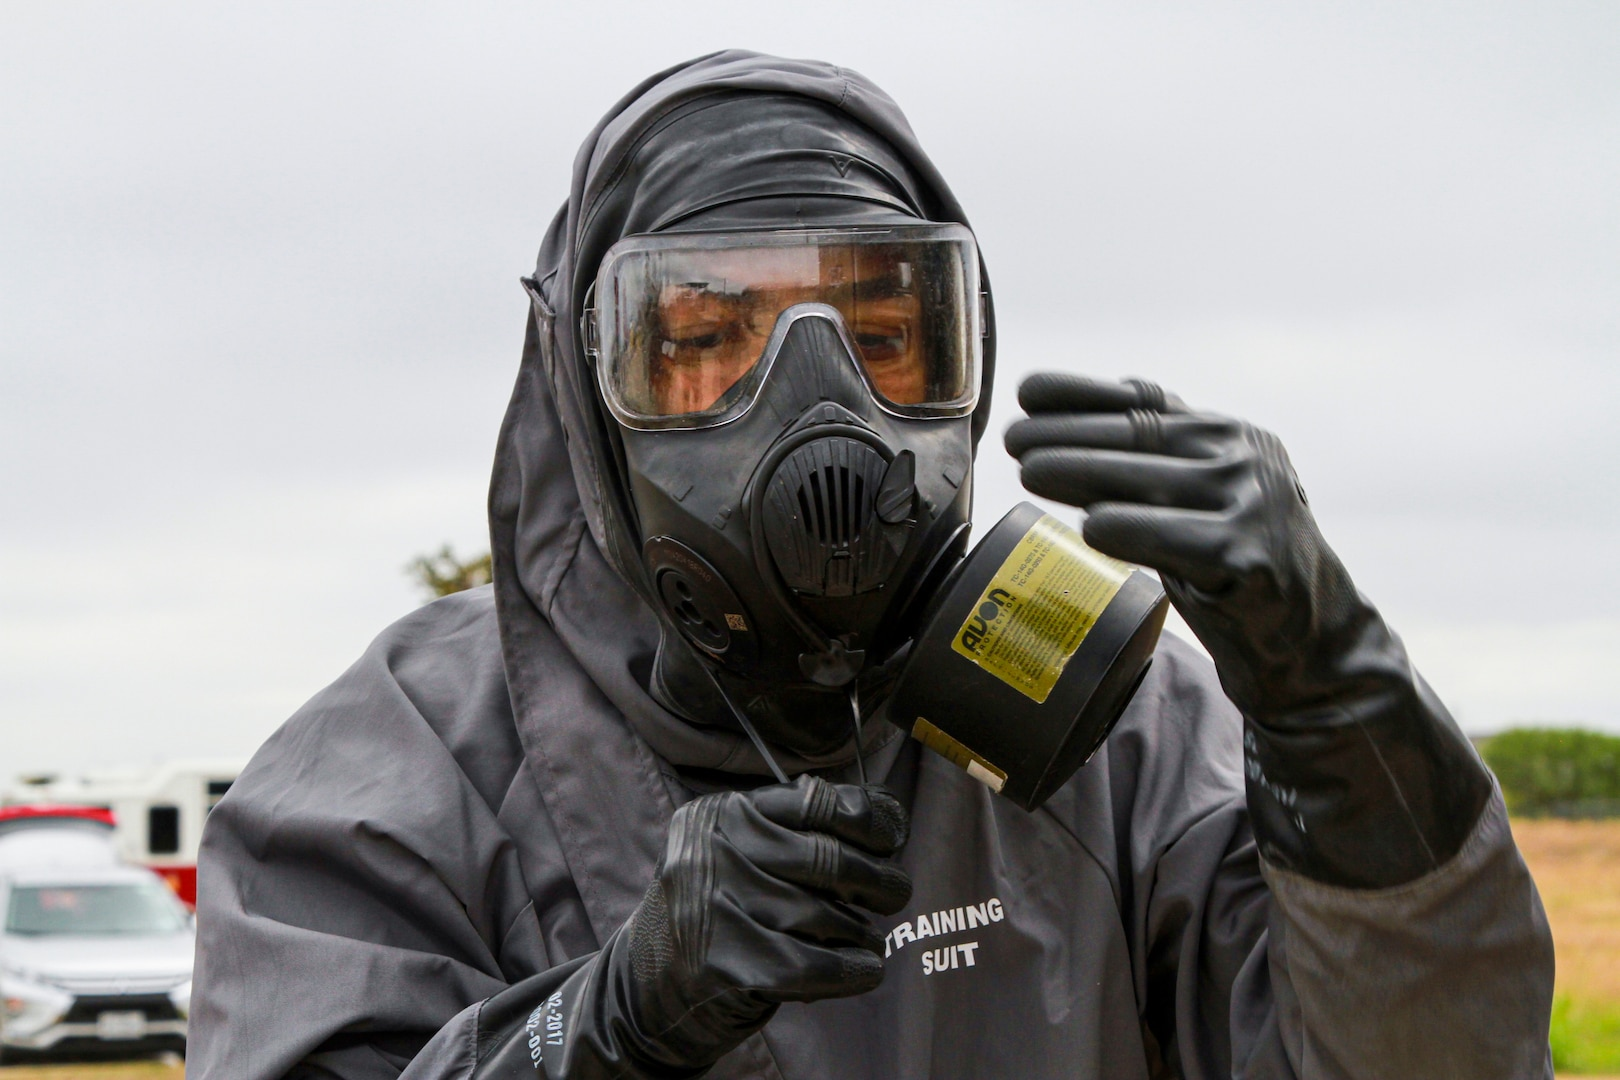 Spc. Isaac Acosta, 68th Engineer Construction Company horizontal engineer, pulls his hazmat suit over his protective mask during the Urban Search and Rescue lane at the San Antonio Fire Academy Nov. 6. This lane is part of a larger exercise run by U.S. Army North's Civil Support Training Activity, a unit comprised of teams that train with state and regional forces on a range of tiered chemical, biological, radiological and nuclear technical tasks that aid in the effective support of civil authorities during a response.